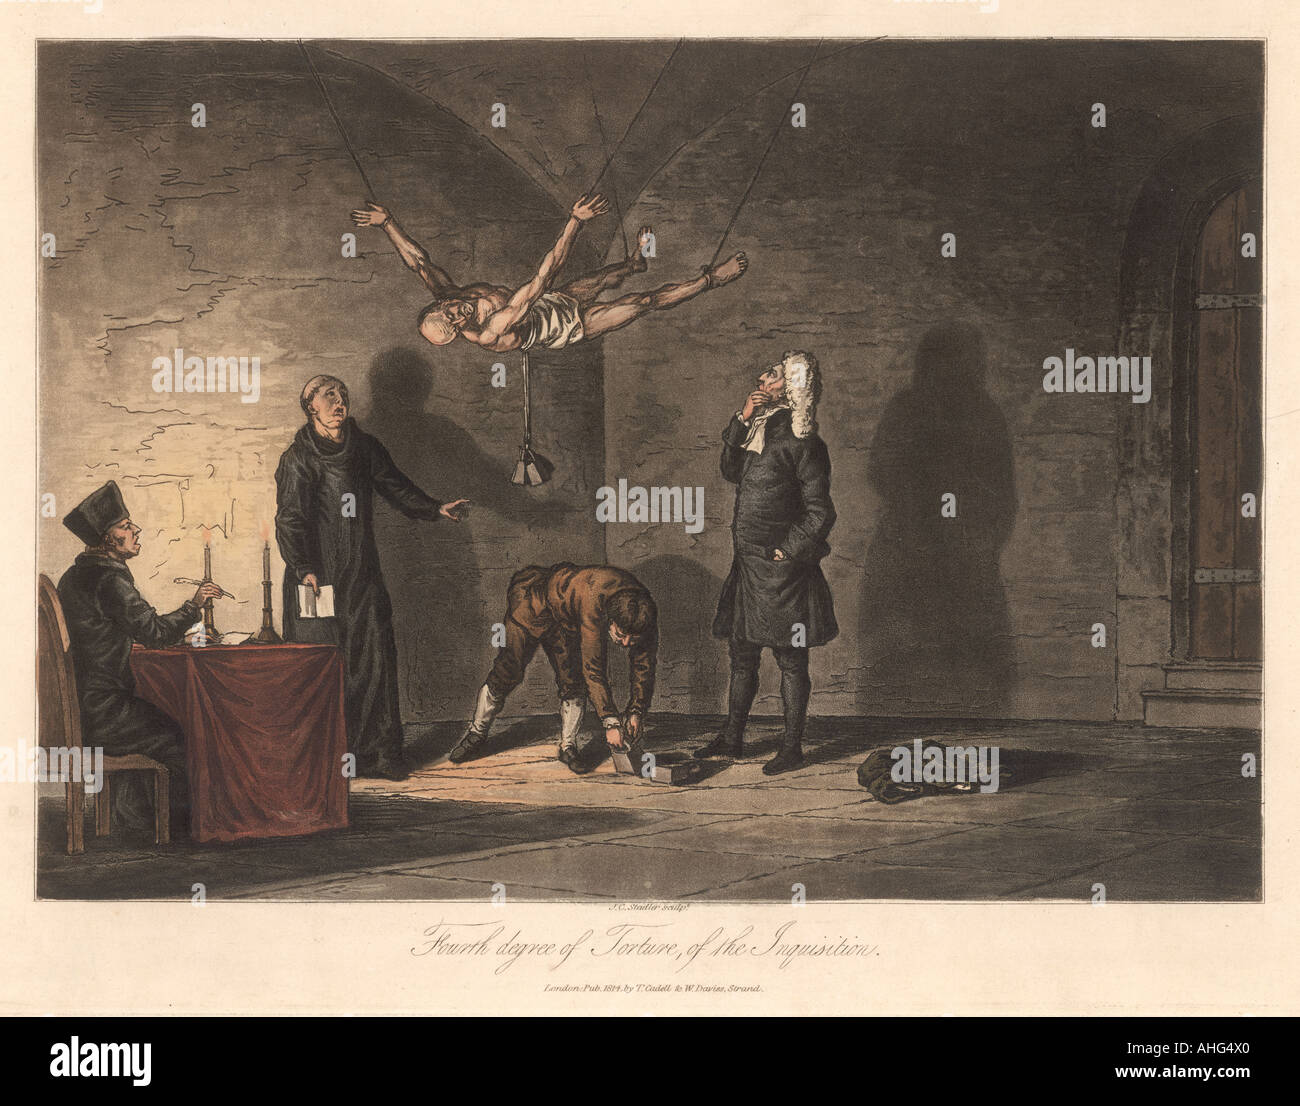 medieval torture and inquisition essay Medieval torture by bridget crowley b5 november 2014 the following paper consists of information on torture during the middle ages this paper observes.